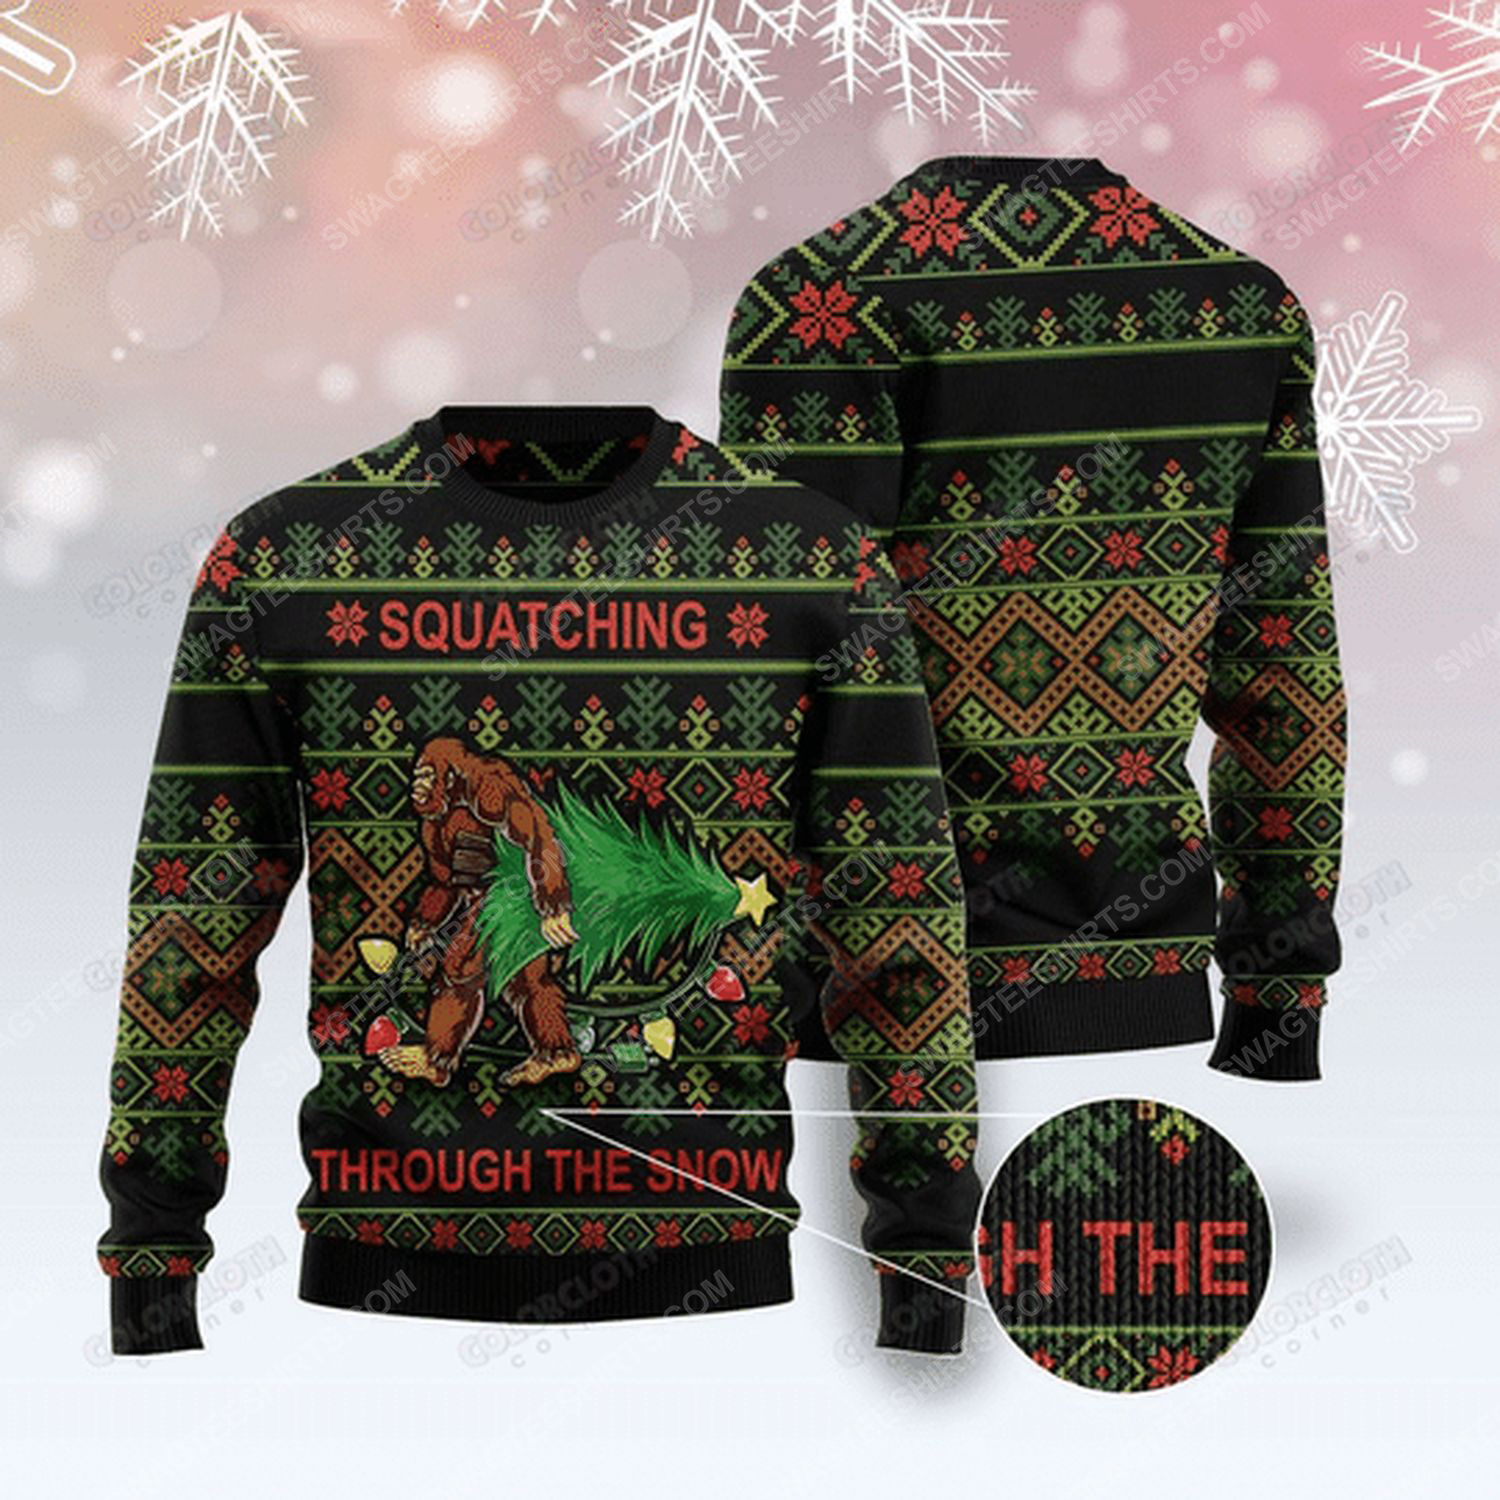 Bigfoot squatching through the snow ugly christmas sweater - Copy (2)